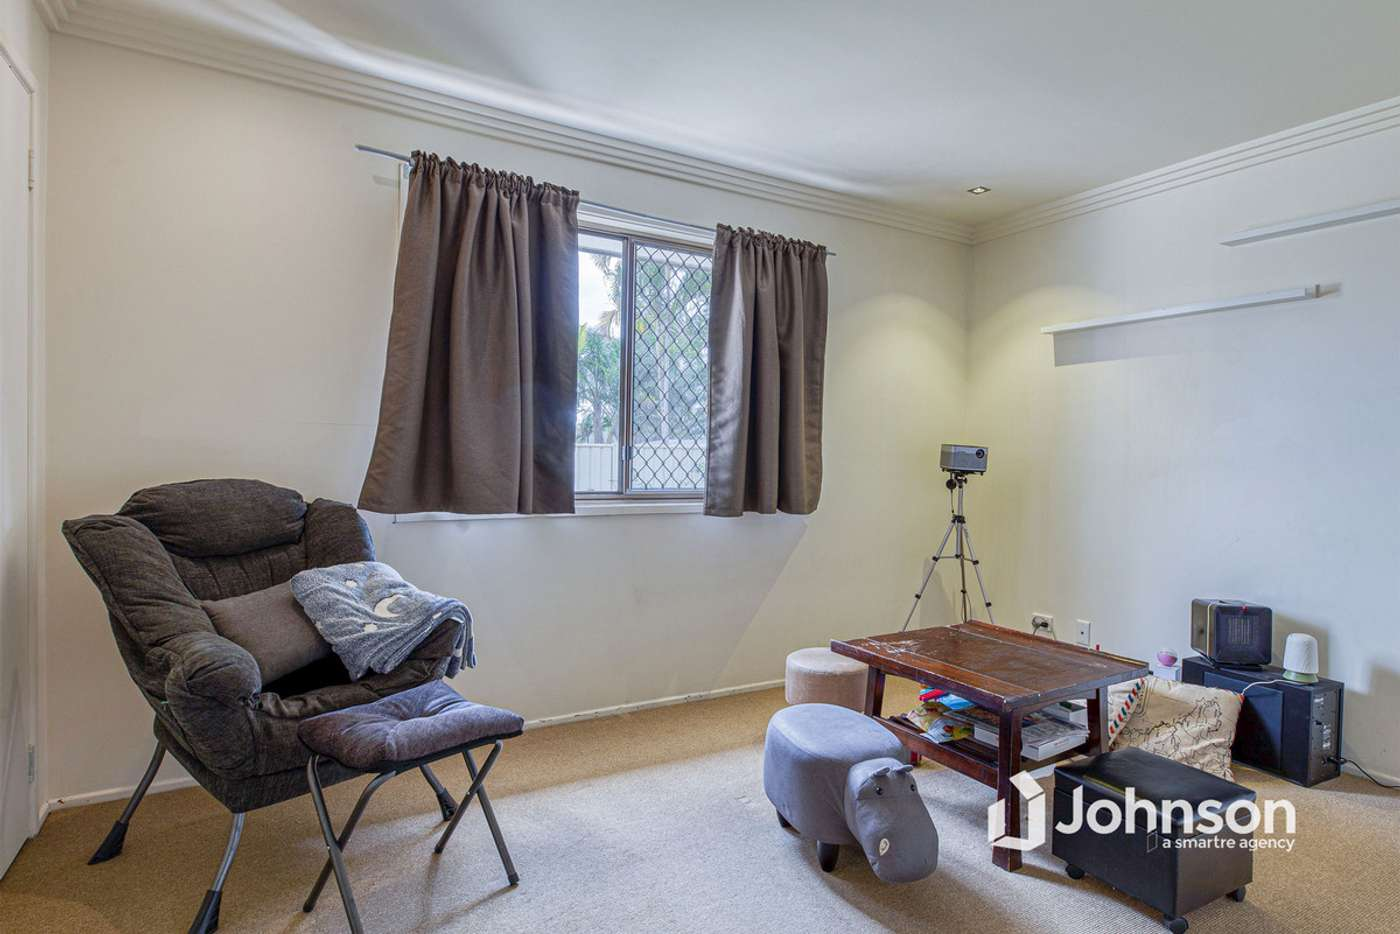 Sixth view of Homely house listing, 36 Estramina Road, Regents Park QLD 4118